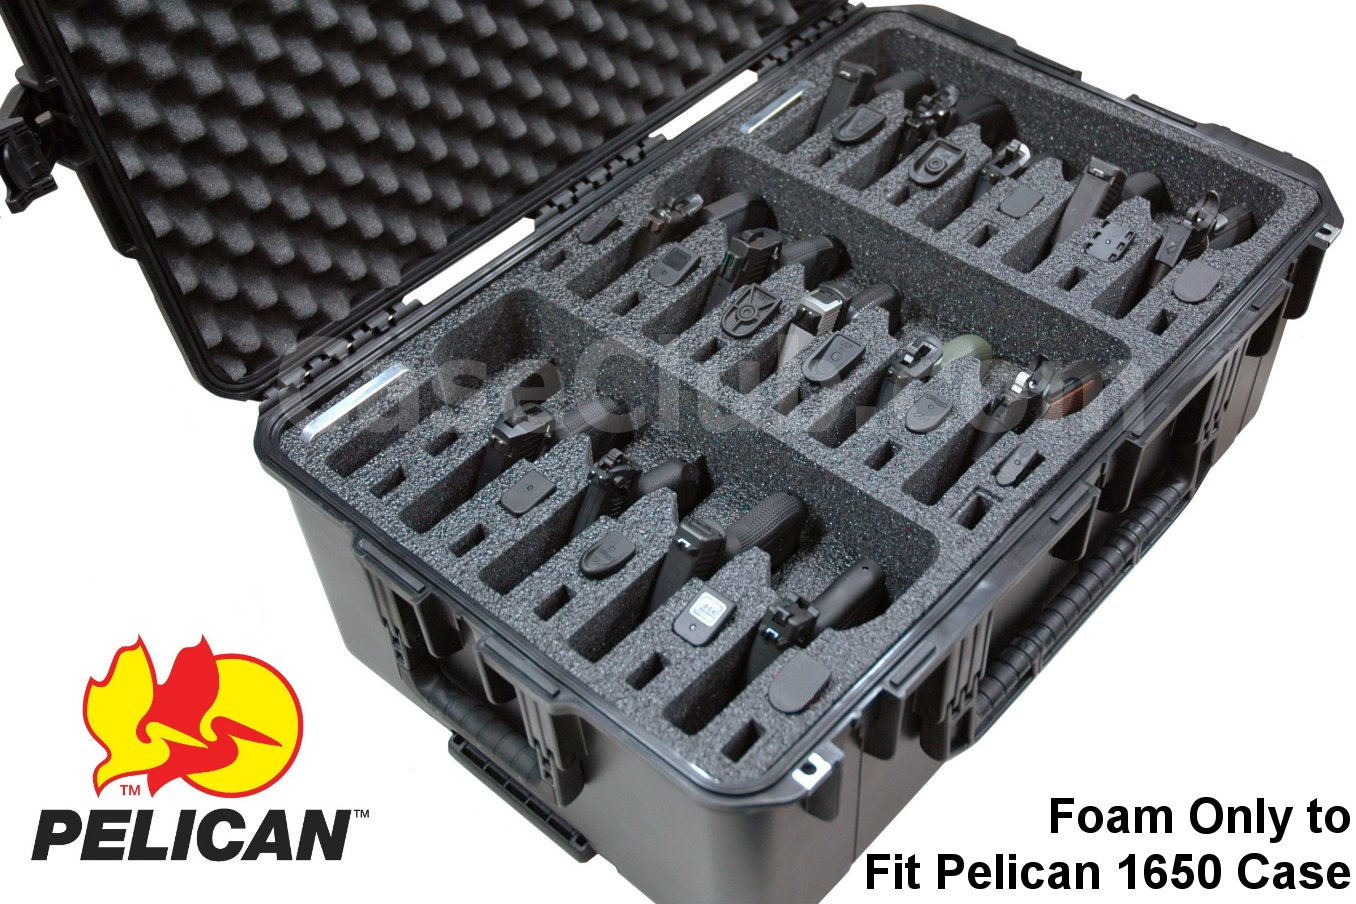 Pelican™ 1650 Case Custom Foam Example: 15 Pistol Foam Only For The Pelican™ 1650 Case